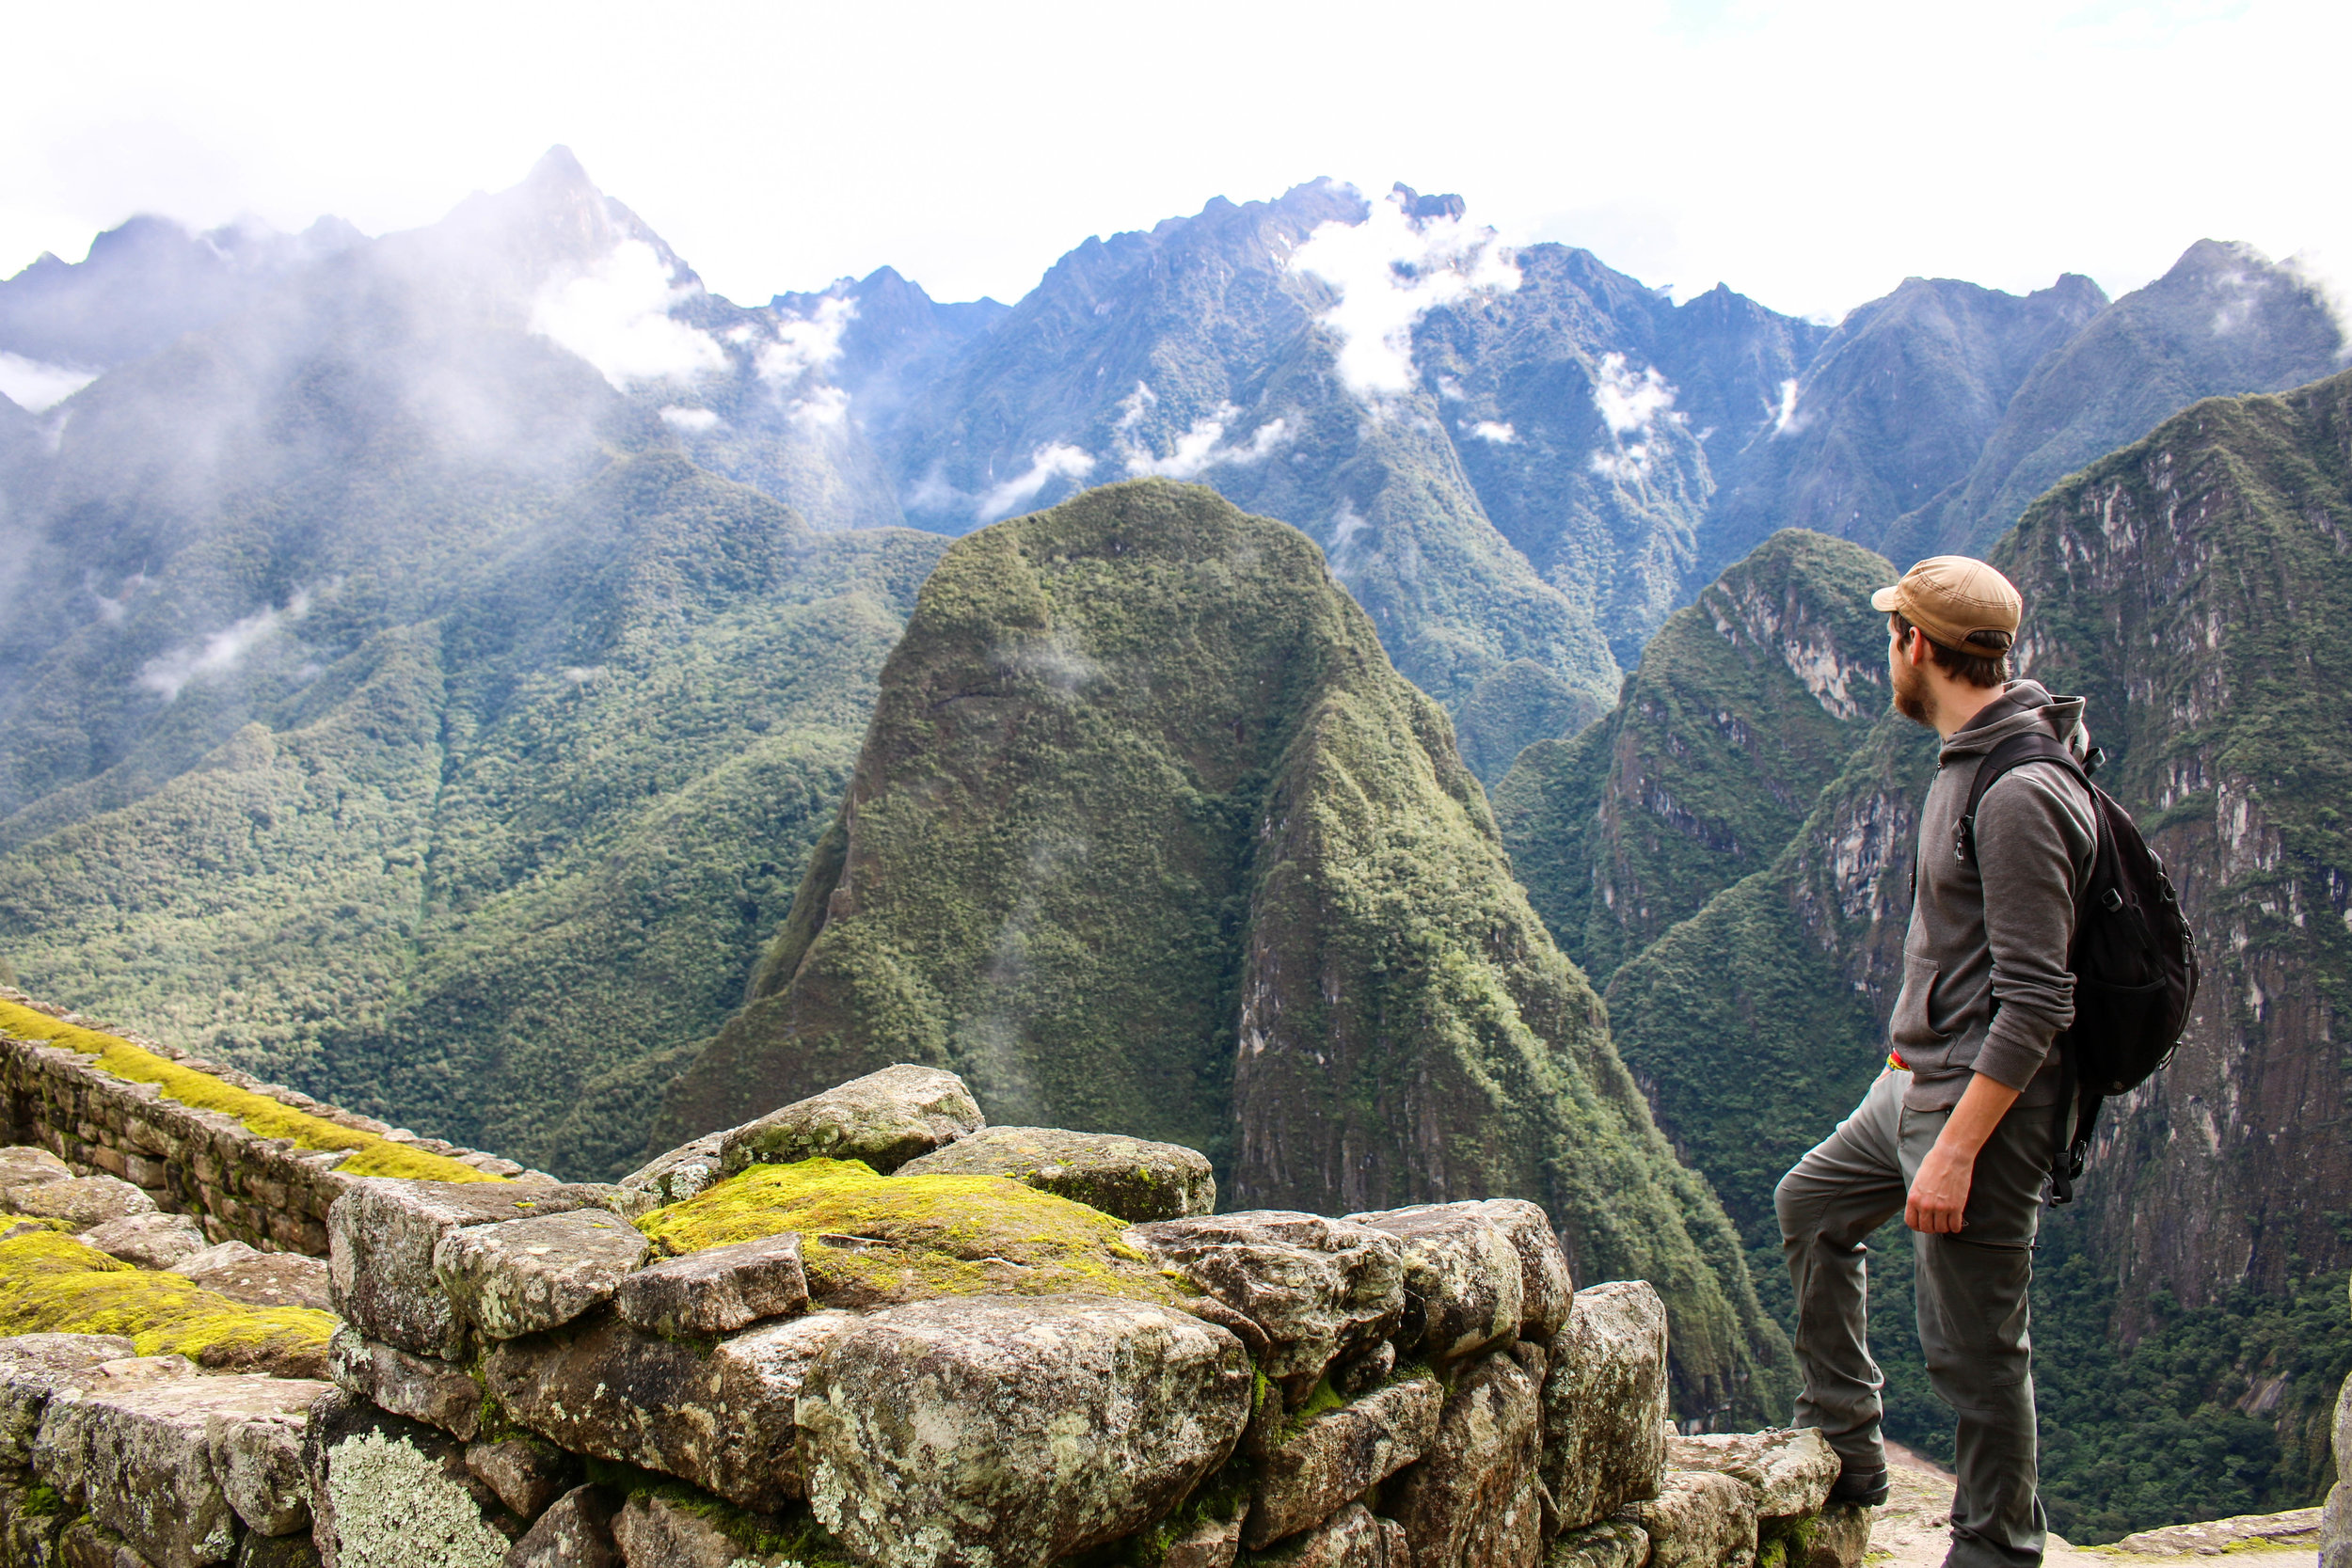 Watching the Clouds at Machu Picchu, Peru